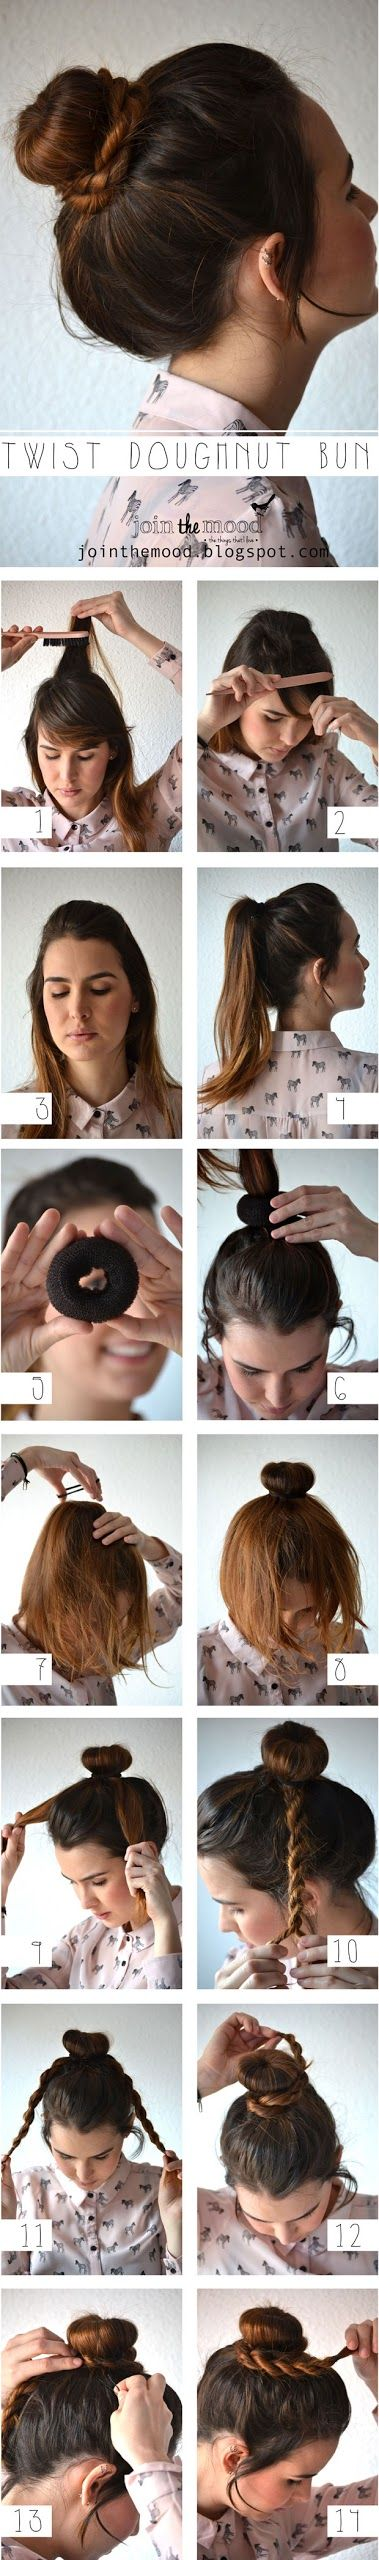 The Best 25 Useful Hair Tutorials Ever, Twist Doughnut Bun For Your Hair